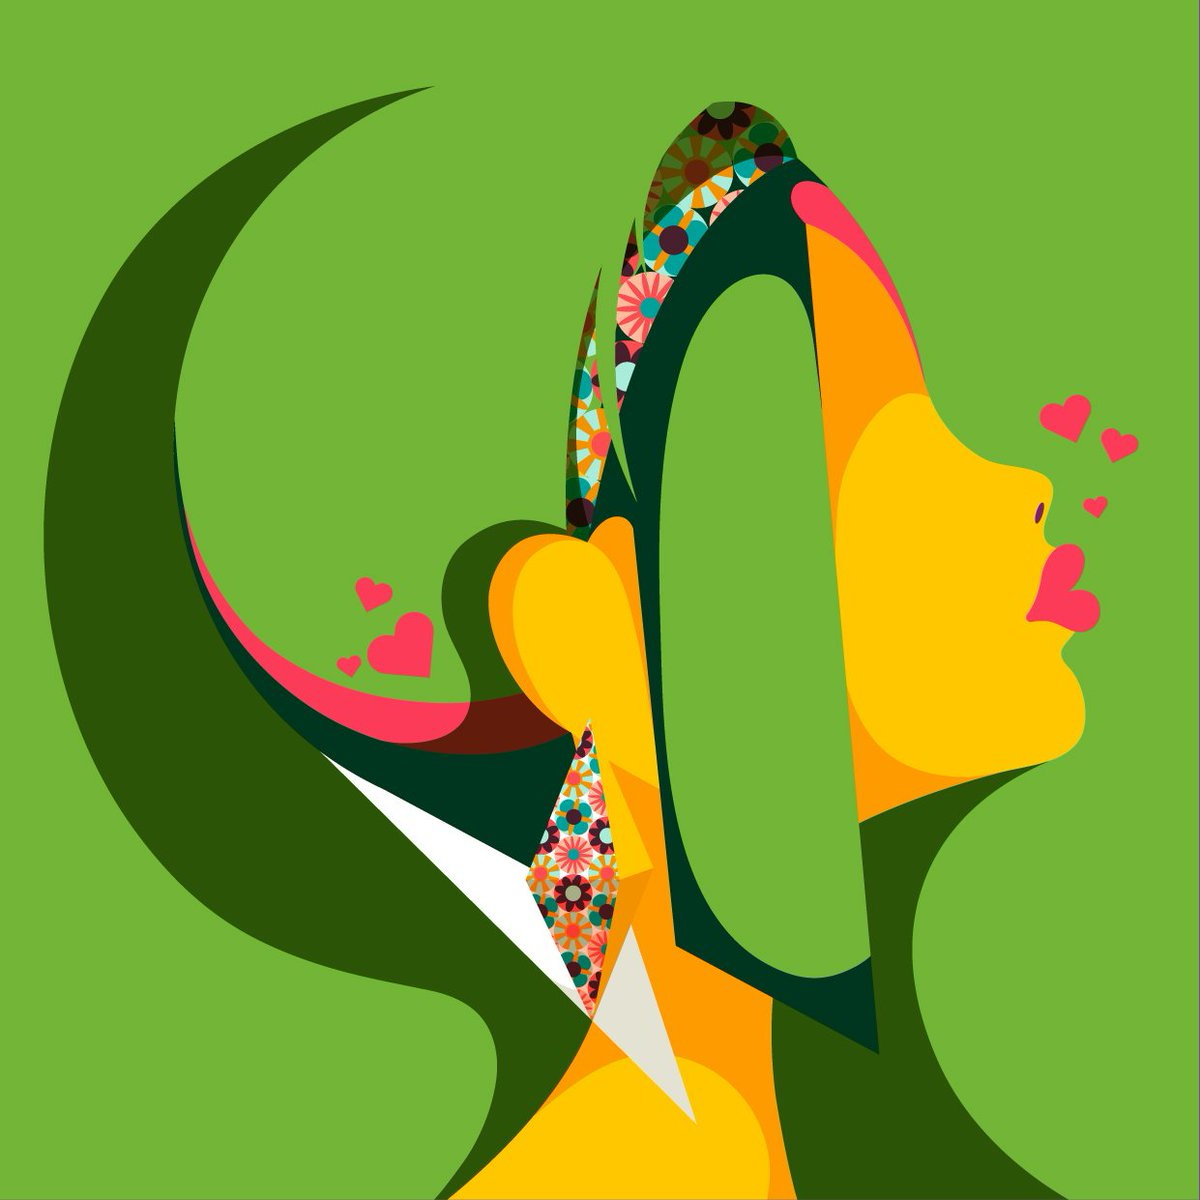 Green Kisses #colour_collective #peagreen #retro #illustration #freelance #portrait<br>http://pic.twitter.com/03RlbVpT76